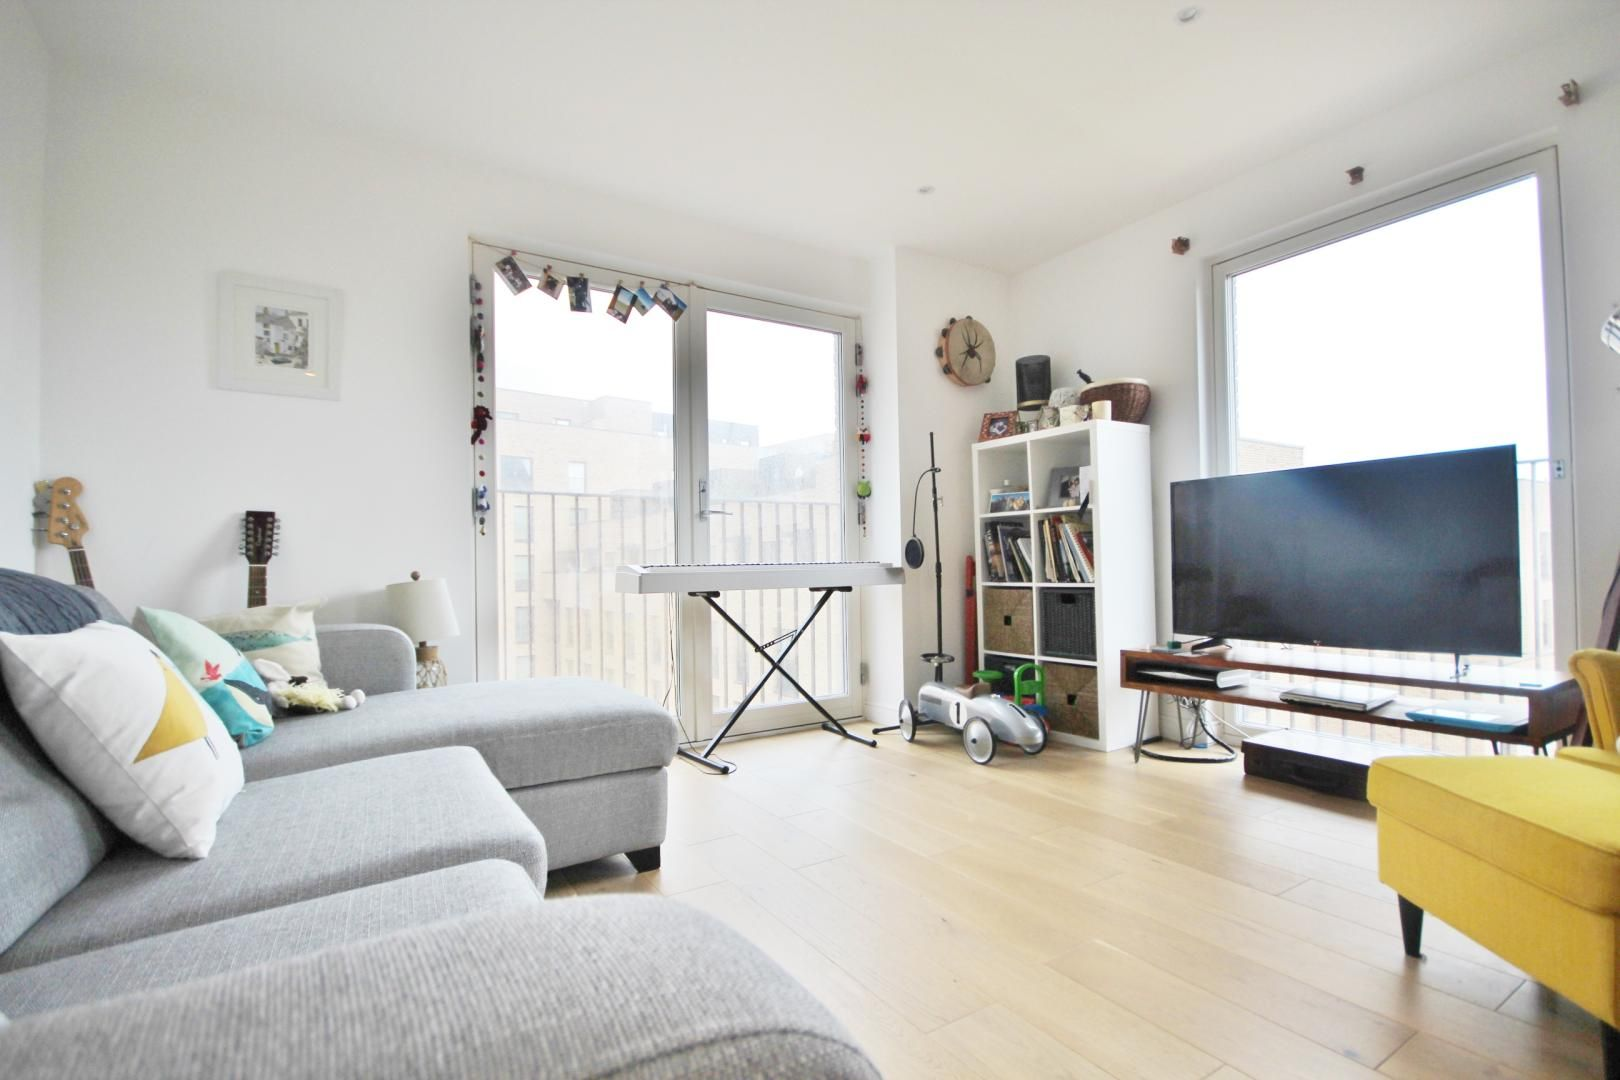 2 bed flat to rent in Mogul Building, E15